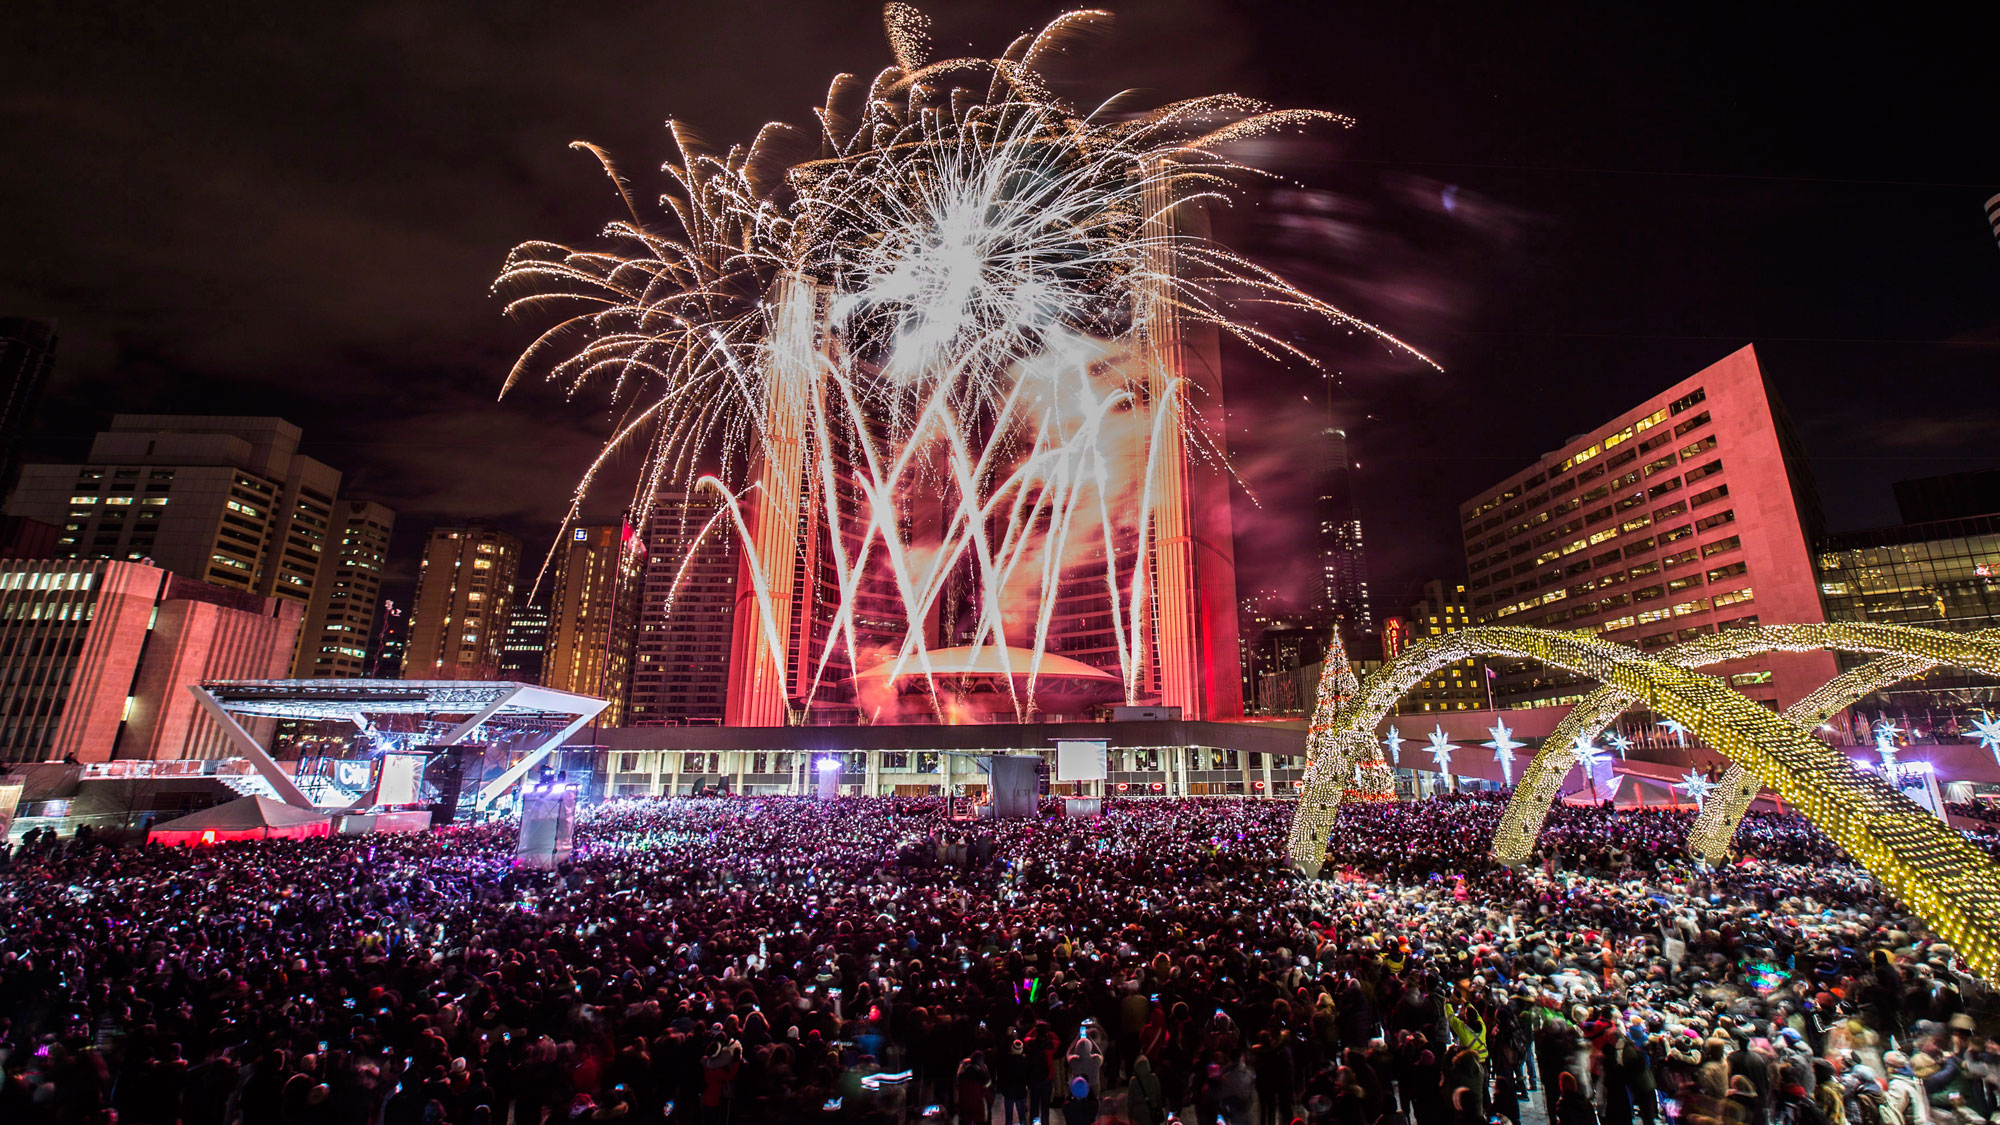 Walk Off The Earth to headline Nathan Phillips Square New Year s Eve     Walk Off The Earth to headline Nathan Phillips Square New Year s Eve  celebrations